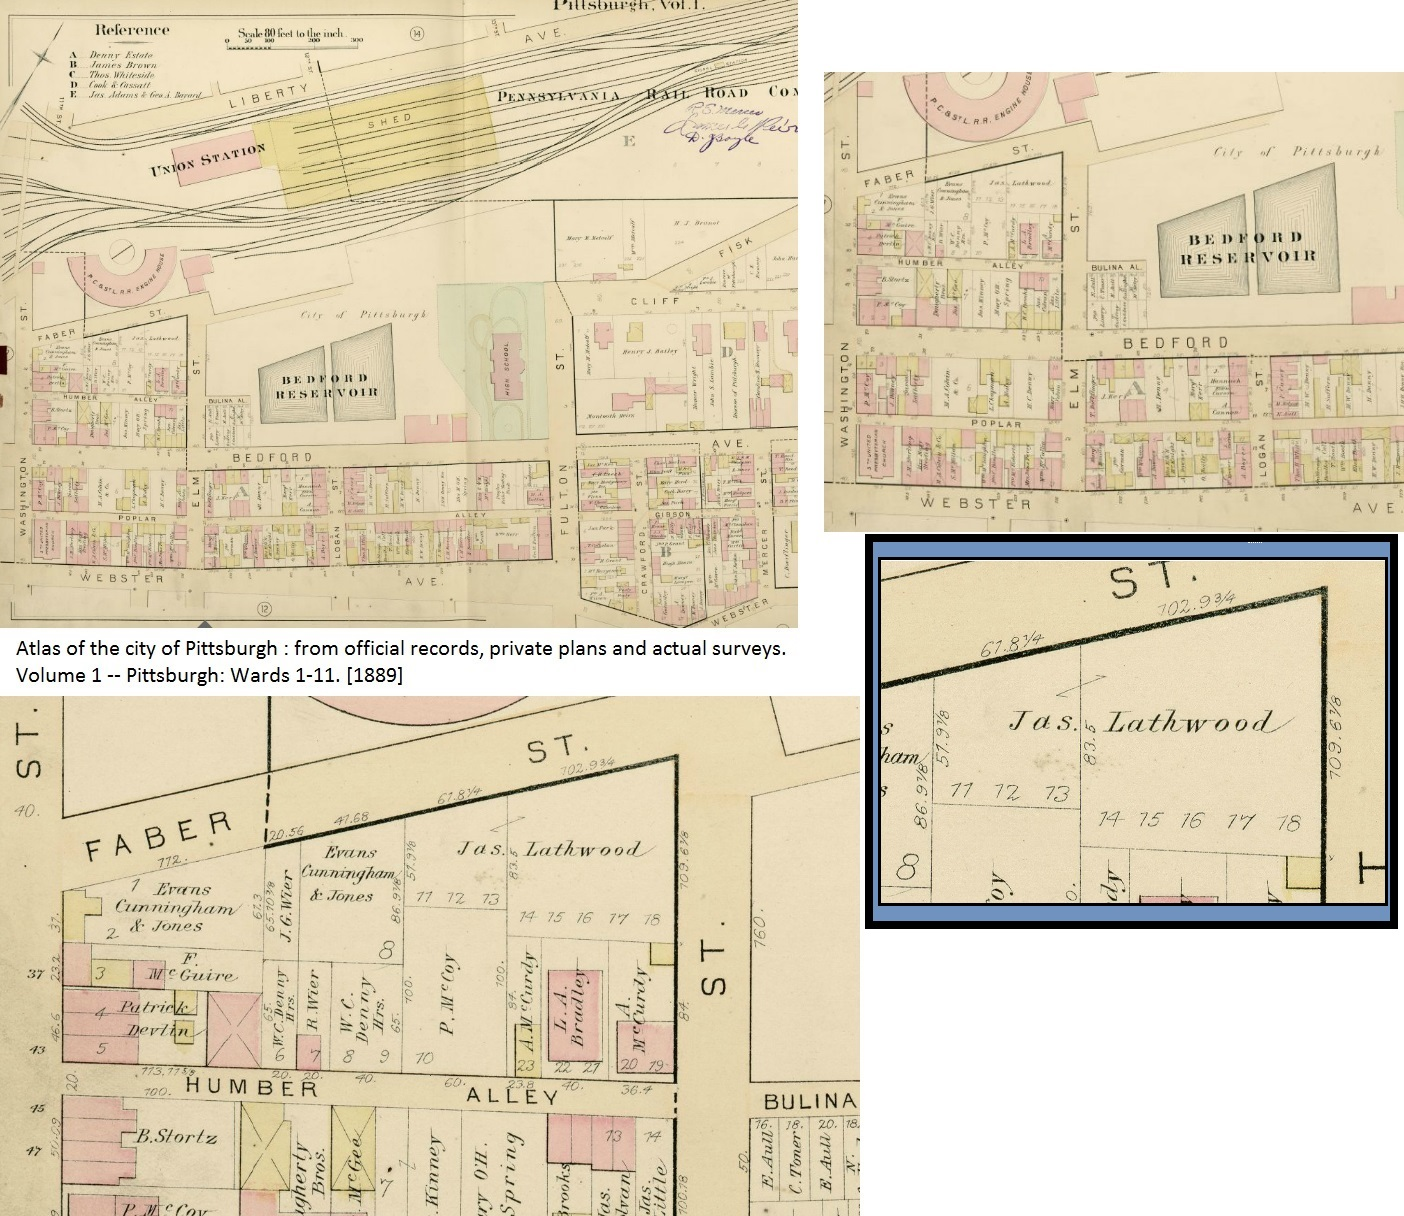 1889 Map showing original location of Lathwood Foundry, prior to relocating to the Strip District.